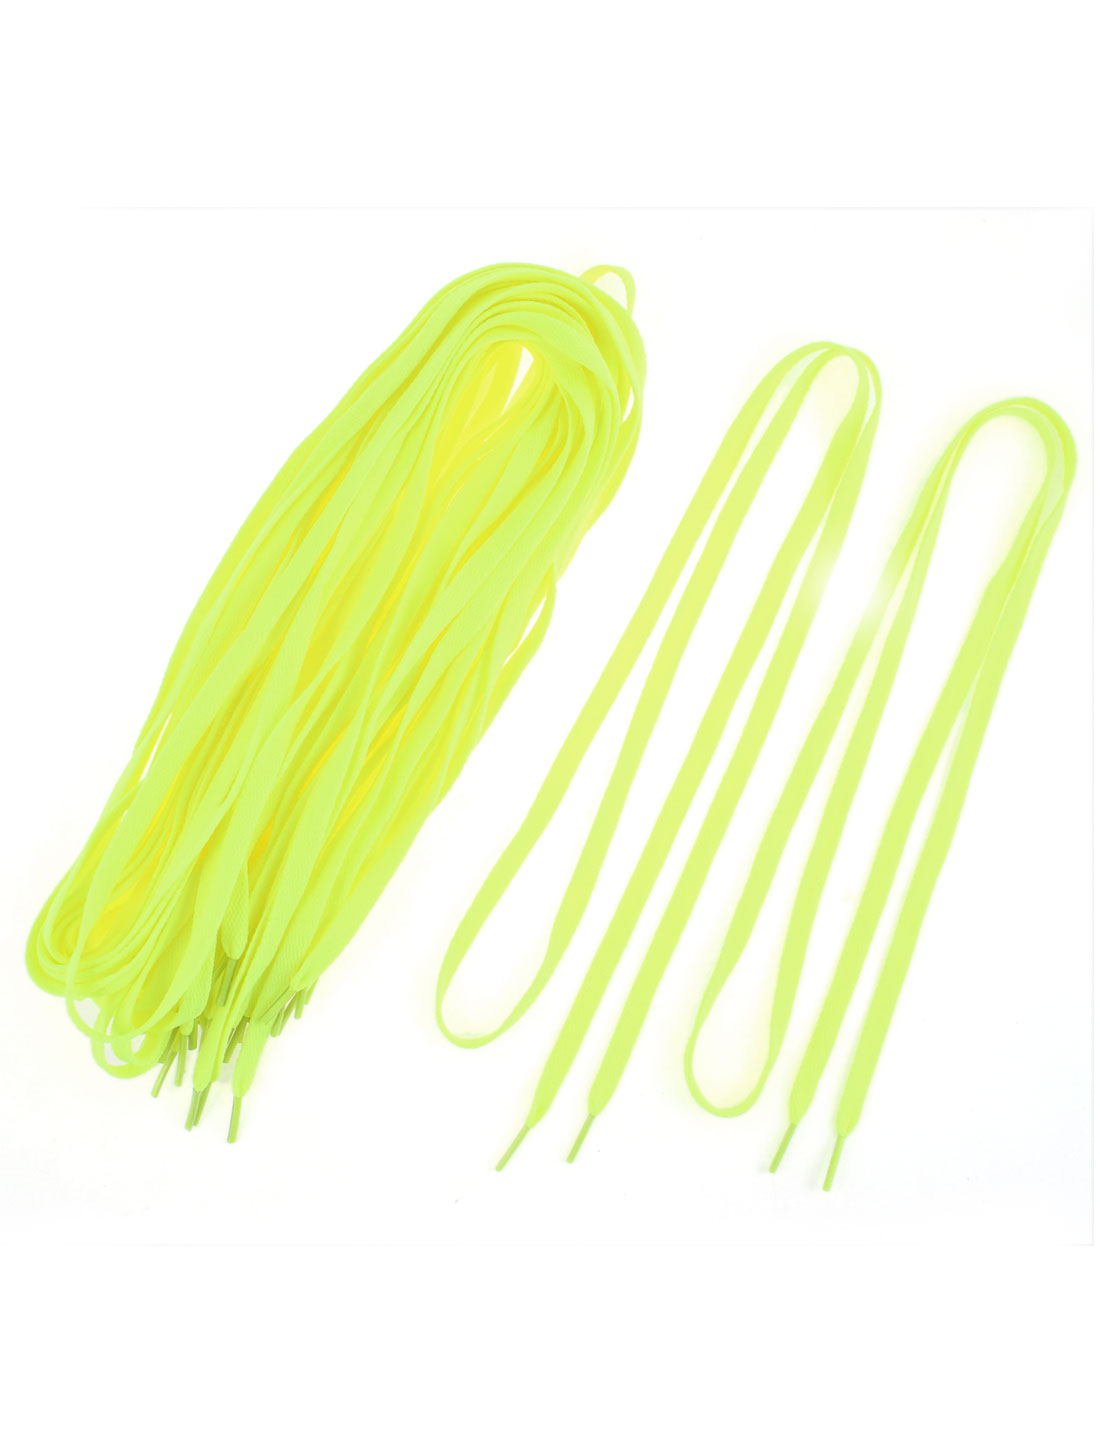 Athletic Sport Shoes Sneaker Flat Bootlaces Shoelaces Strings Yellow 10 Pairs